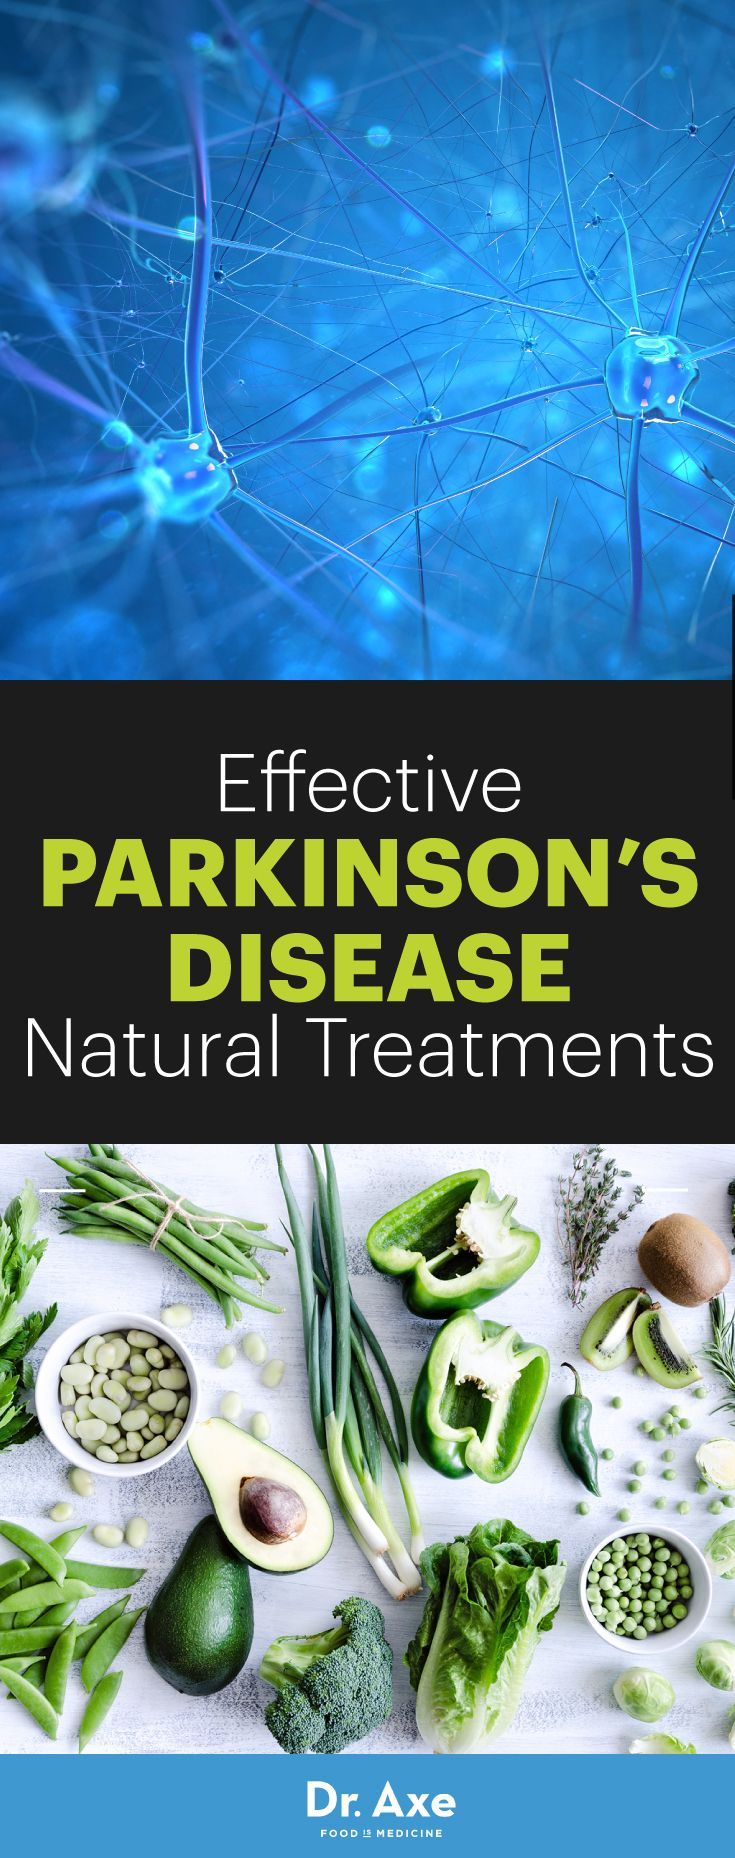 While there is no cure for Parkinson's (the condition is both chronic and progressive), there are medications available to boost dopamine in the brain and help manage symptoms.